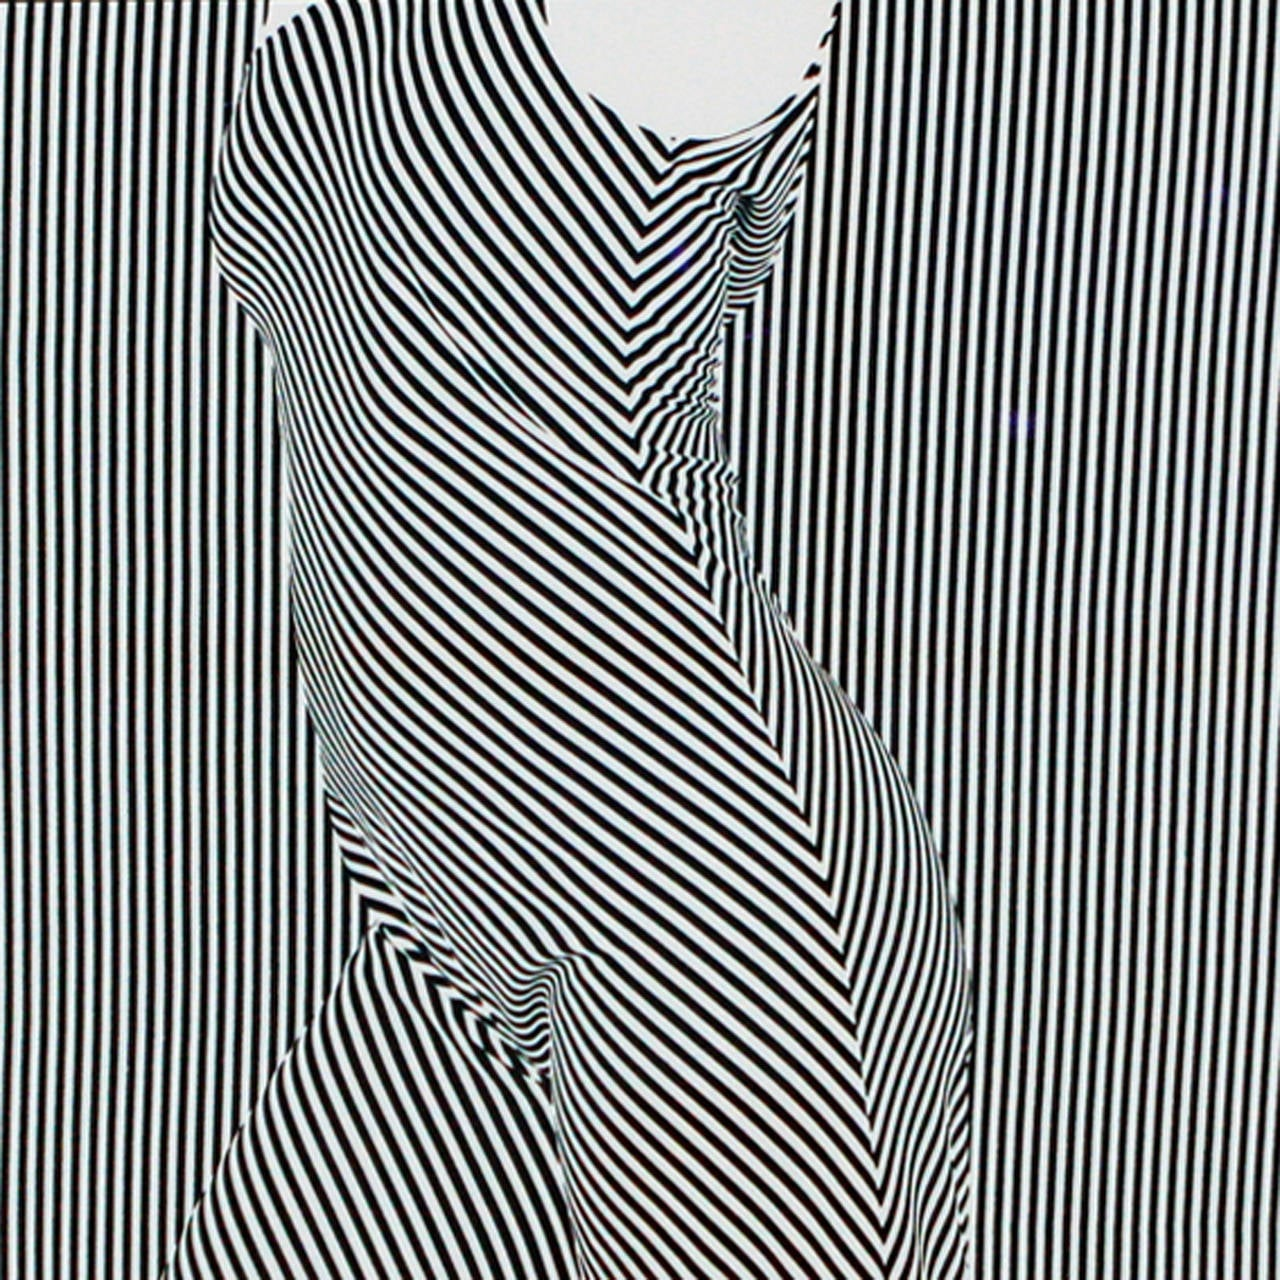 Uniquely framed op art lithograph, signed and numbered by the artist. First in an edition of 100.  Seeley's images have appeared in numerous U.S. and European publications including; Camera, Zoom, Graphis, and Photographis Annuals, American